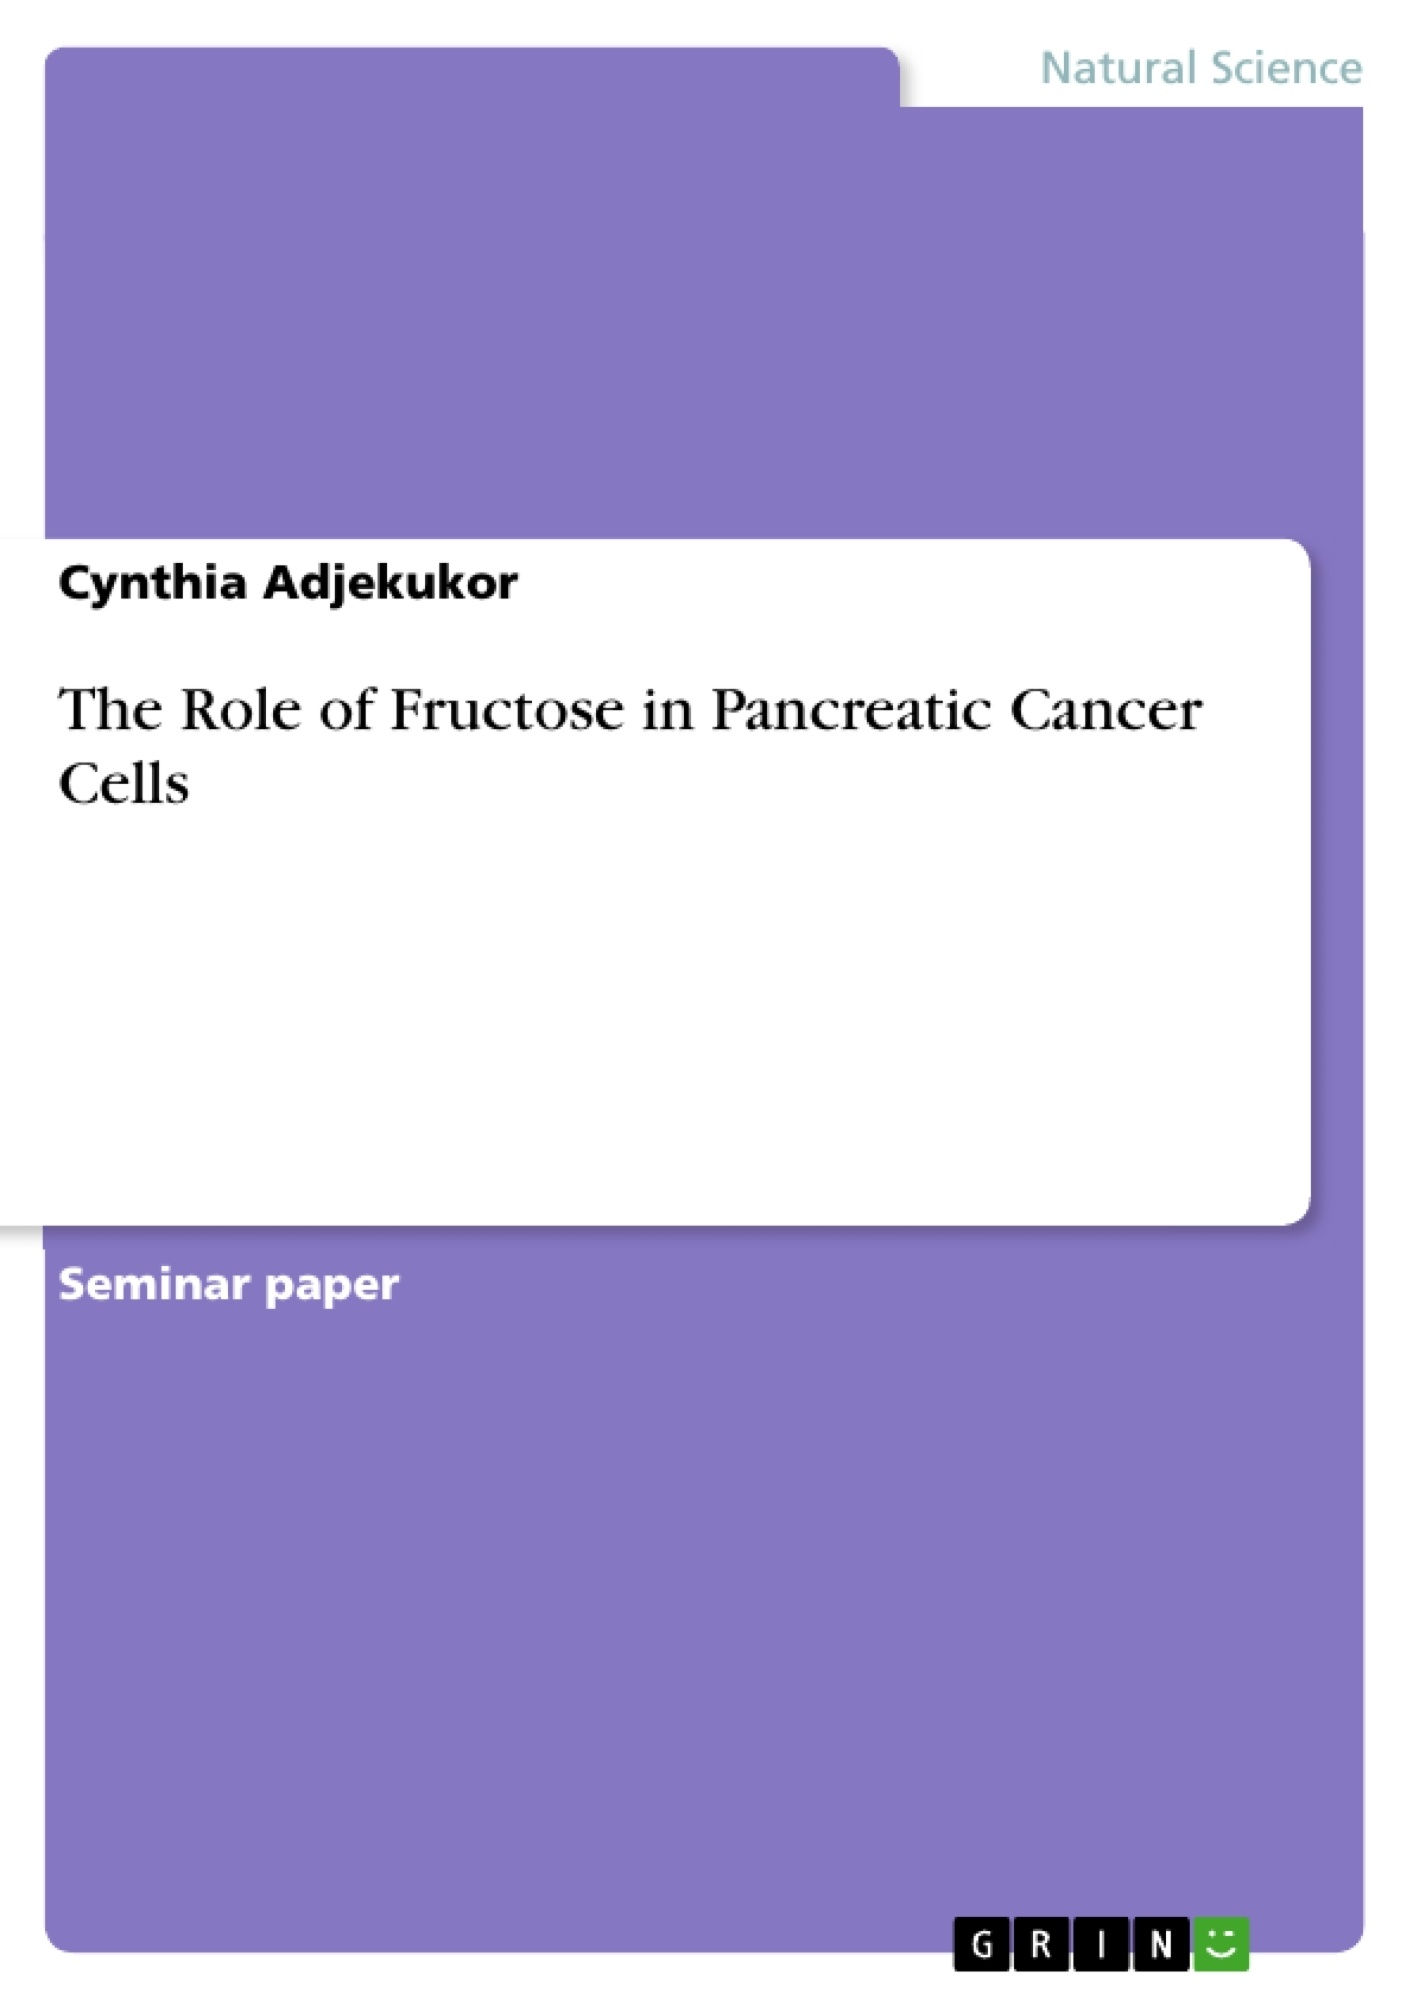 Title: The Role of Fructose in Pancreatic Cancer Cells